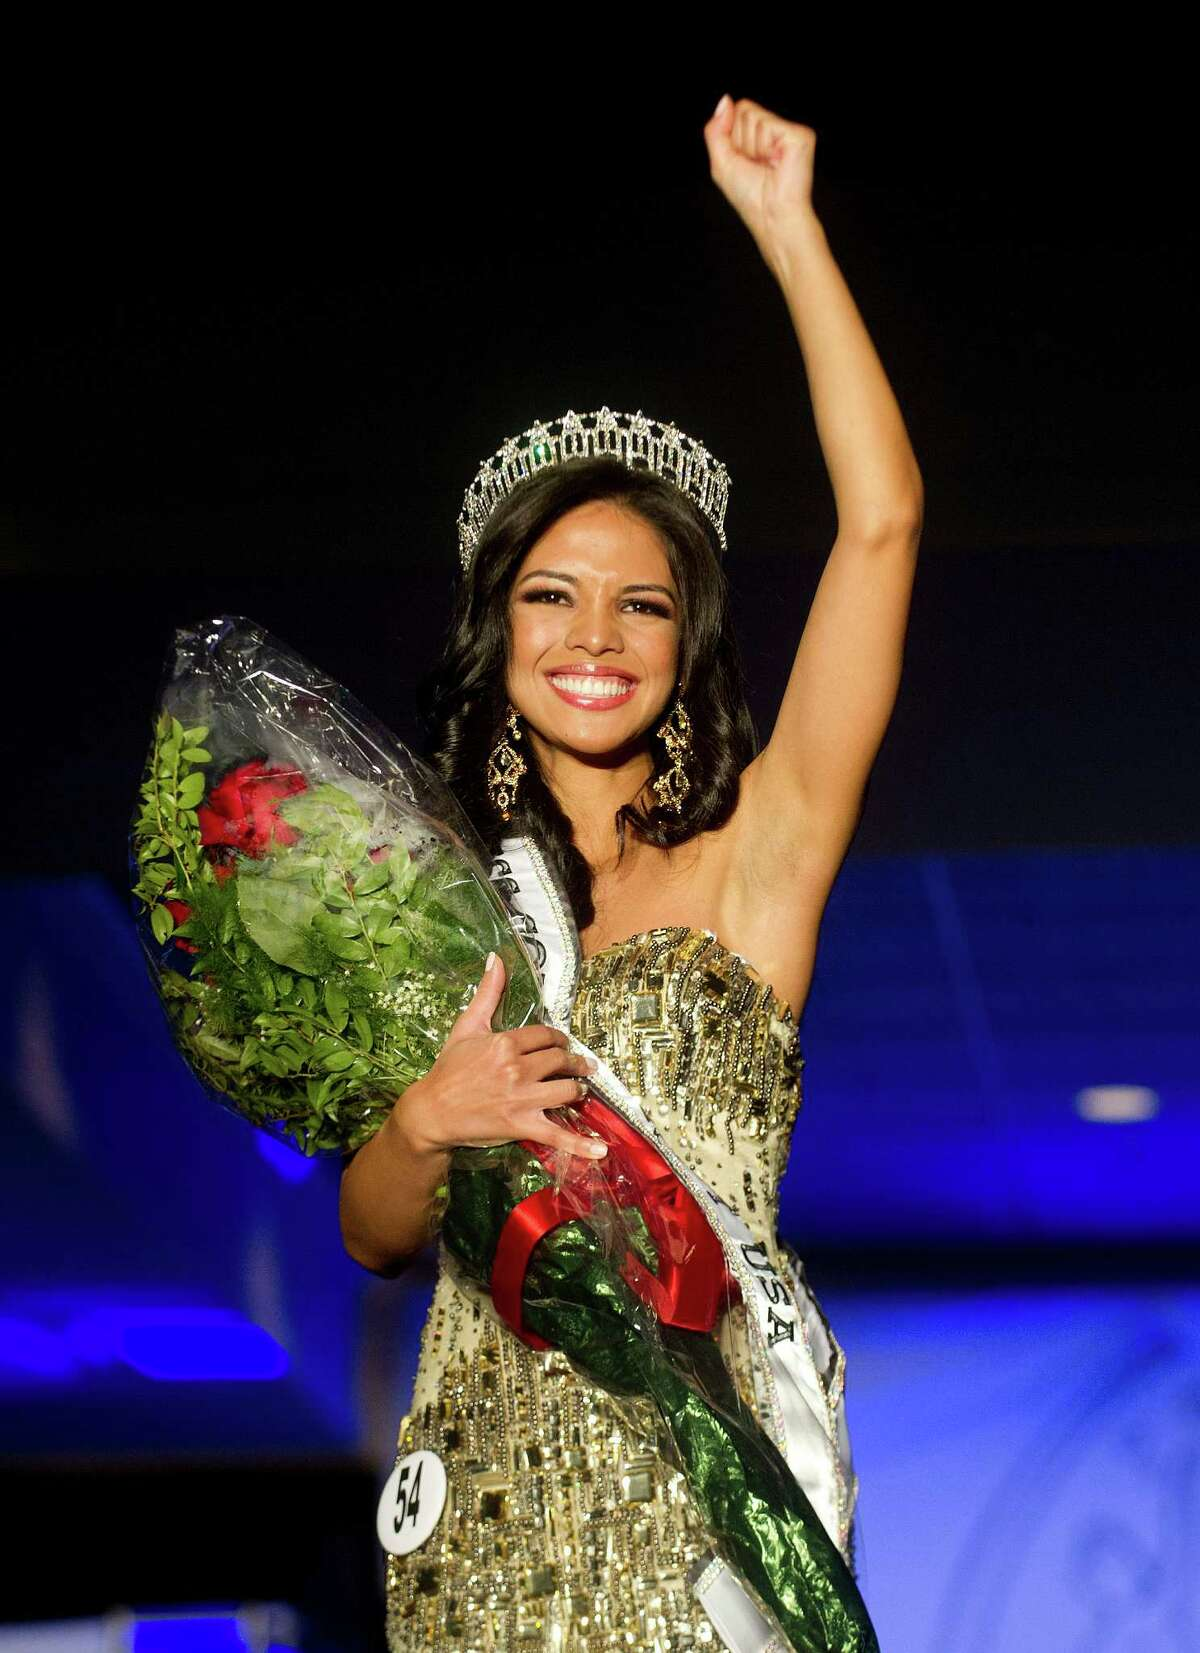 Desirée Pérez of Greenwich is crowned Miss Connecticut USA at the Stamford Marriott in Stamford, Conn., on Sunday, November 17, 2013.